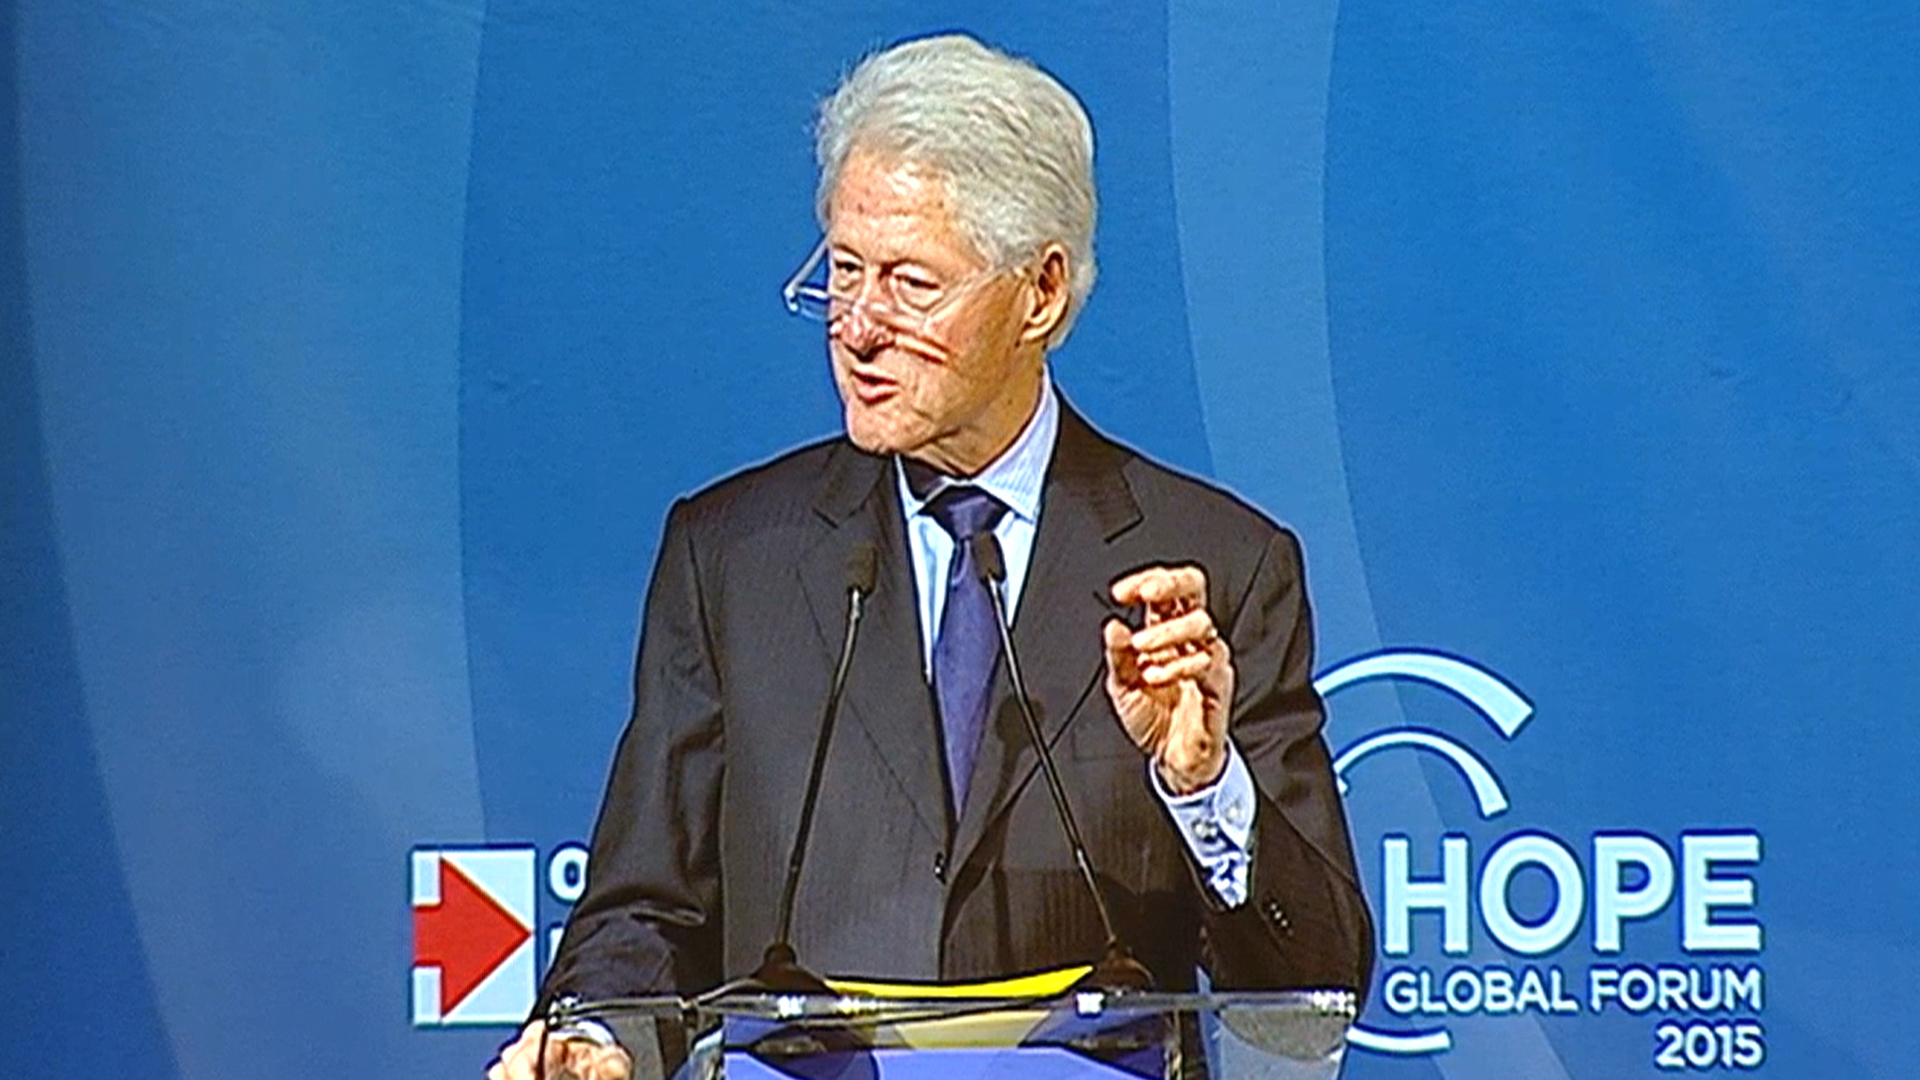 Bill Clinton speaks at HOPE Global Forum